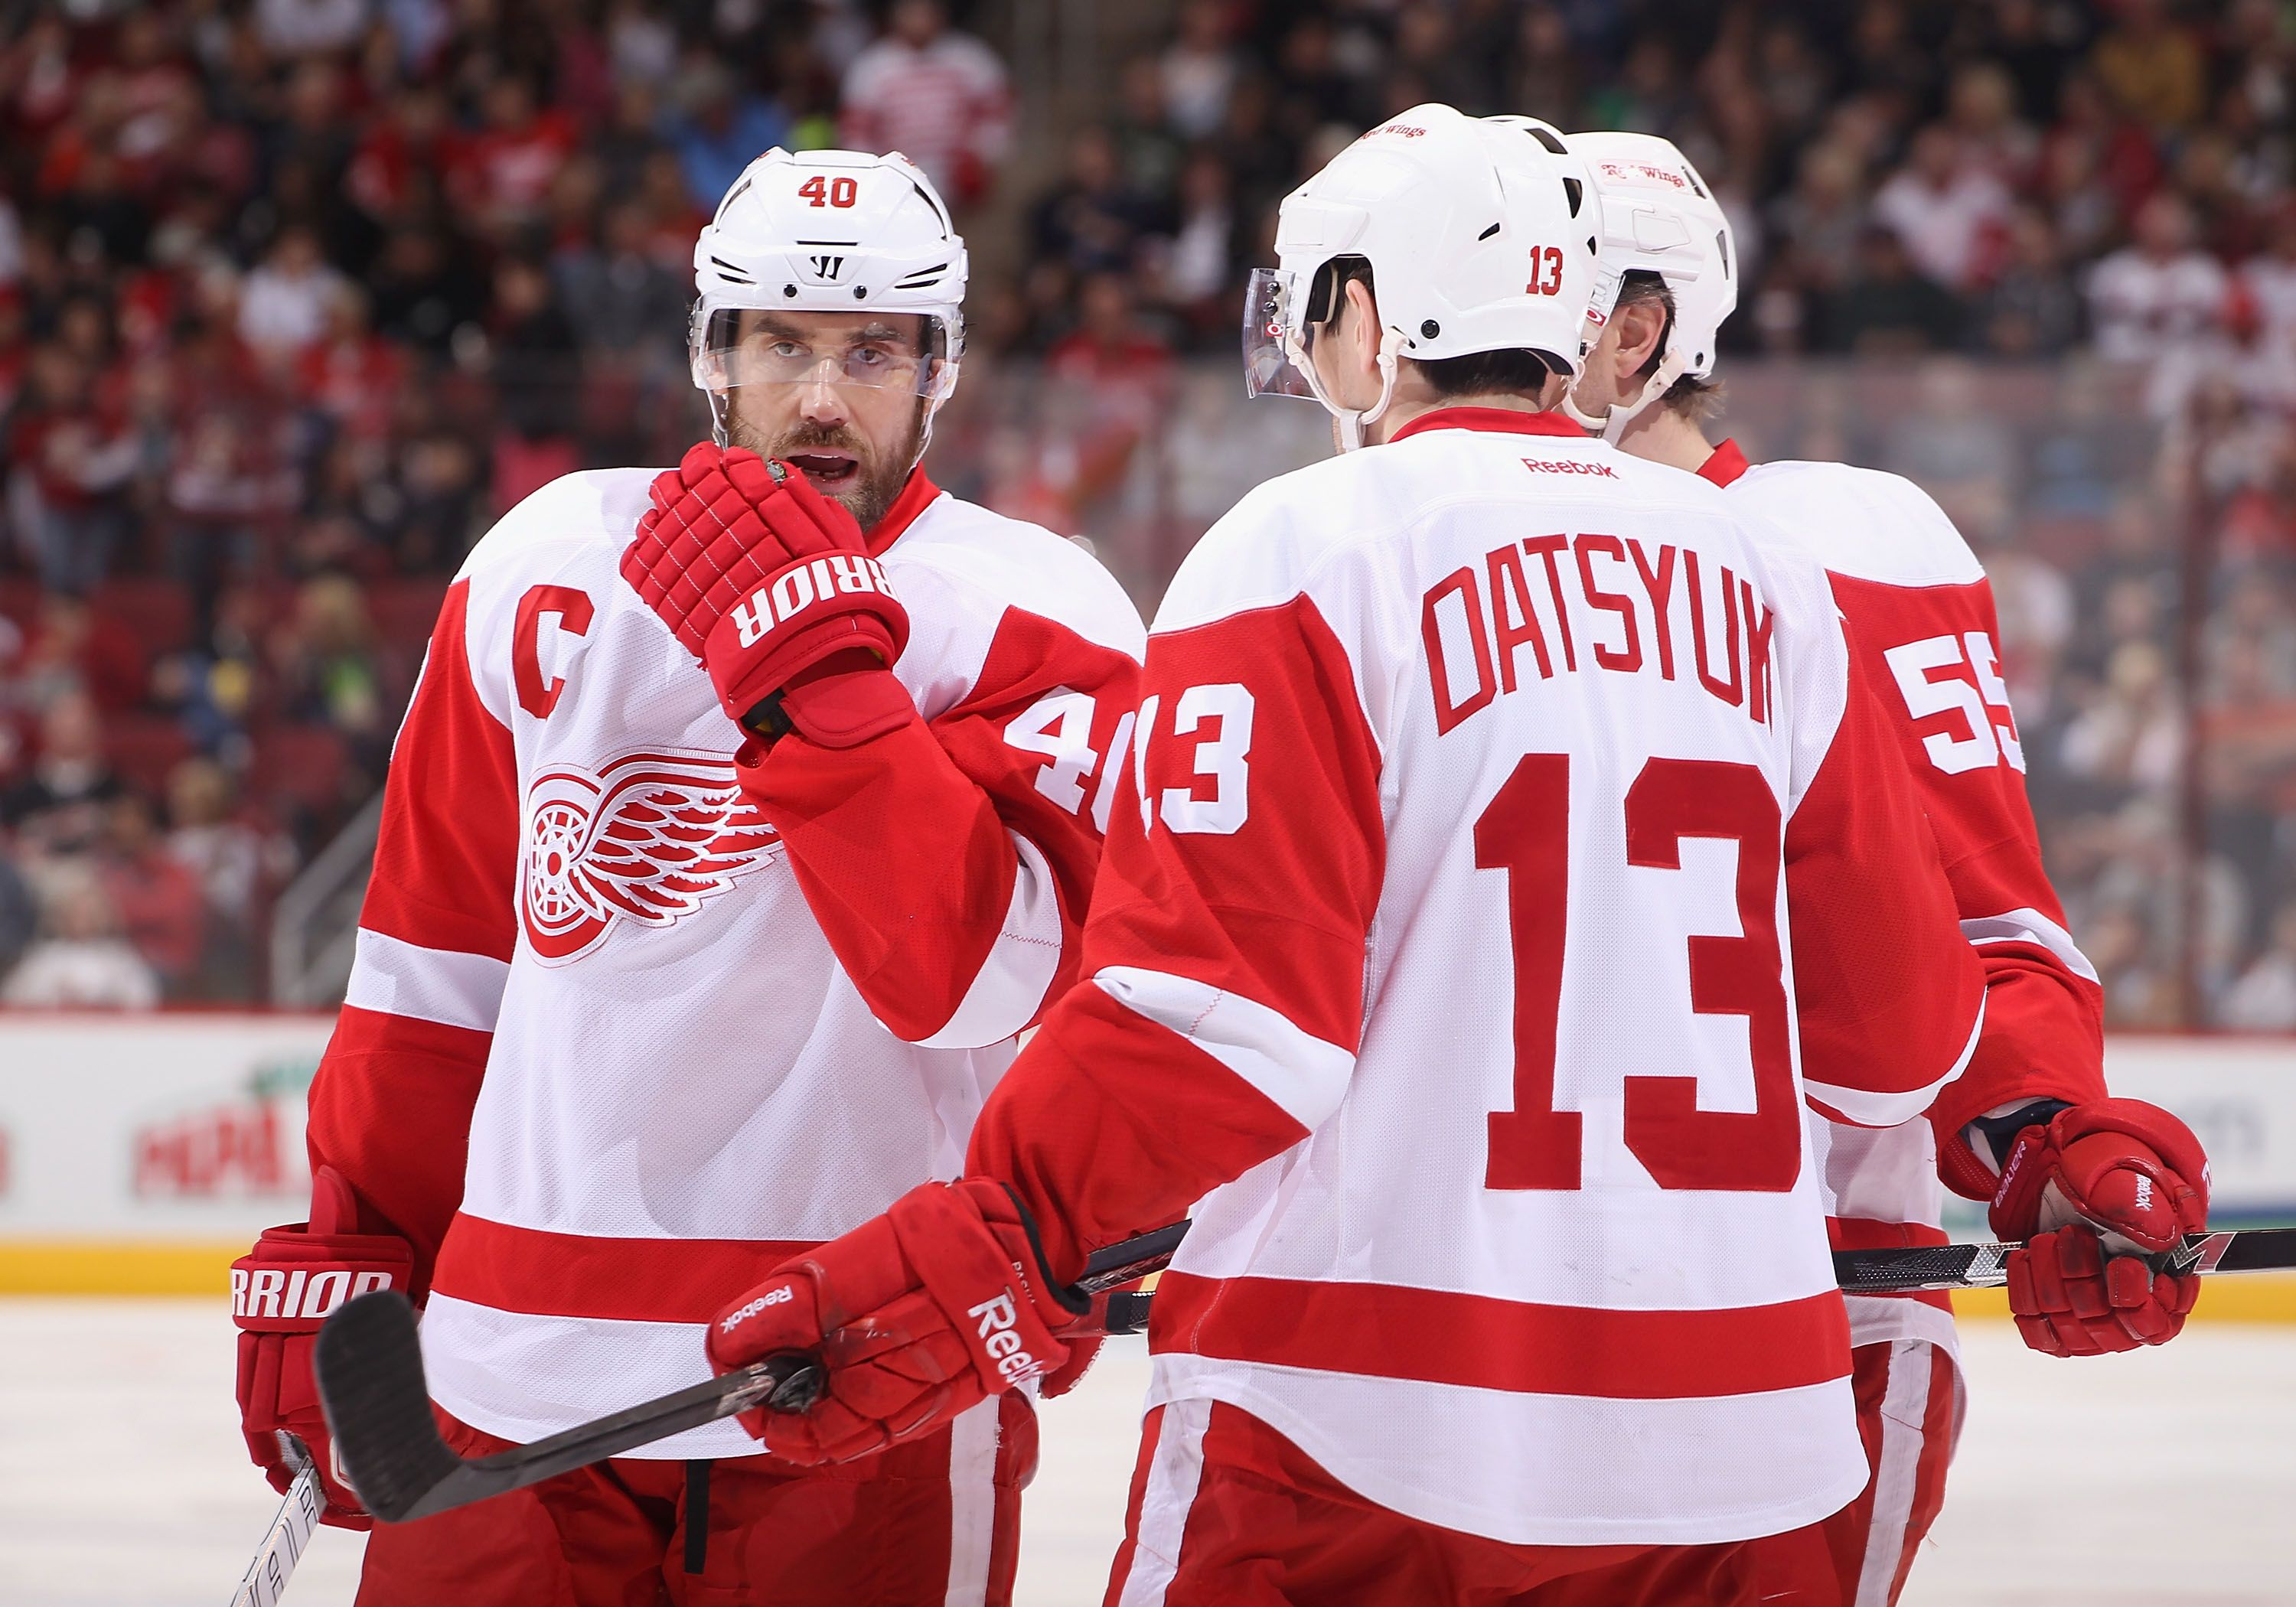 3. Detroit Red Wings - $36,368,712 Going to Sochi